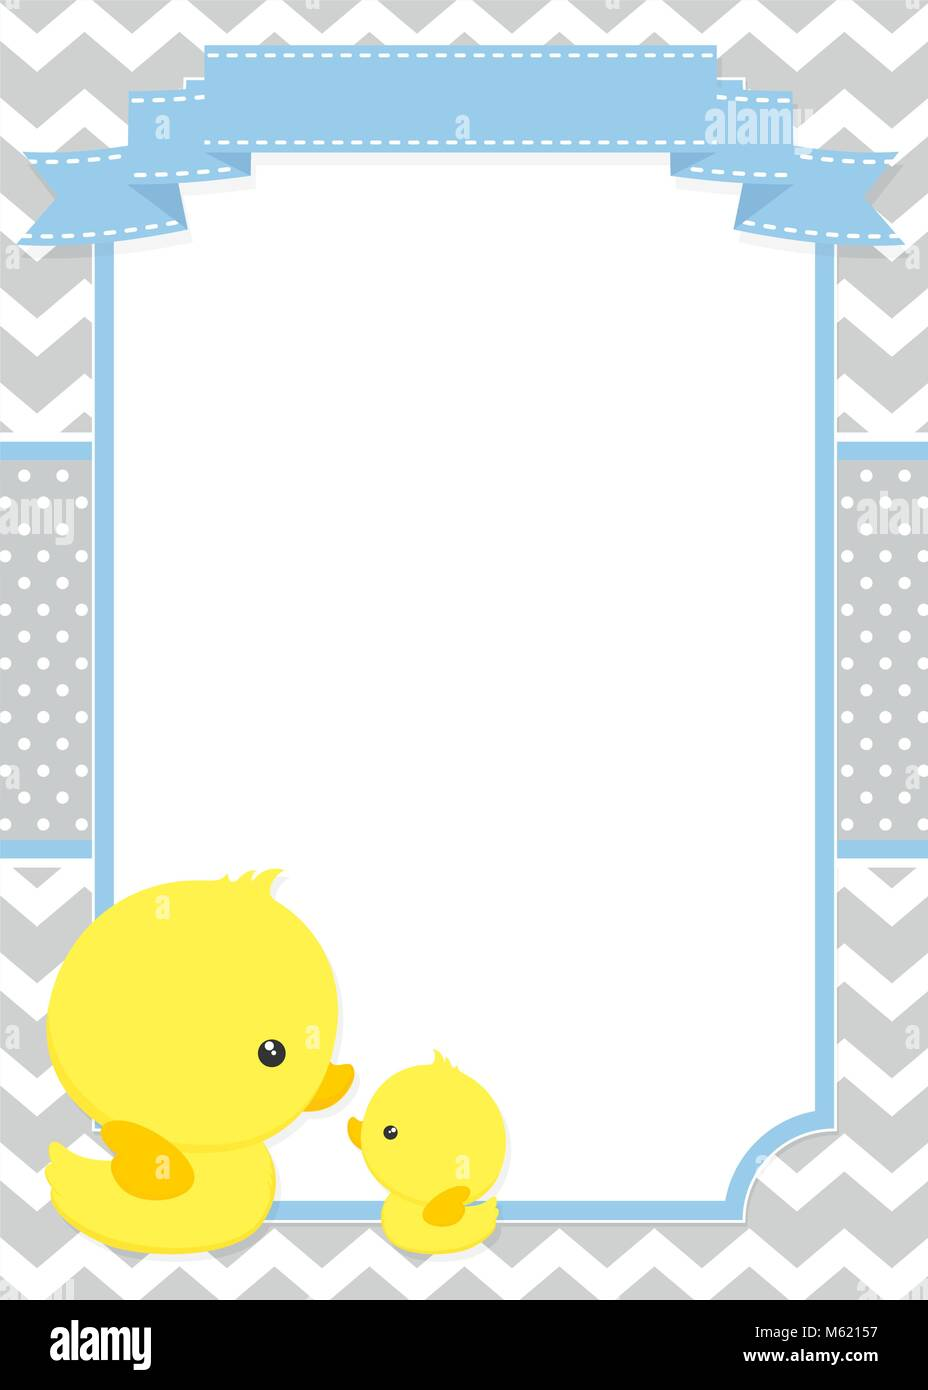 Baby shower invitation with cute duck mom and baby ducky on chevron baby shower invitation with cute duck mom and baby ducky on chevron pattern and polka dots background stopboris Image collections